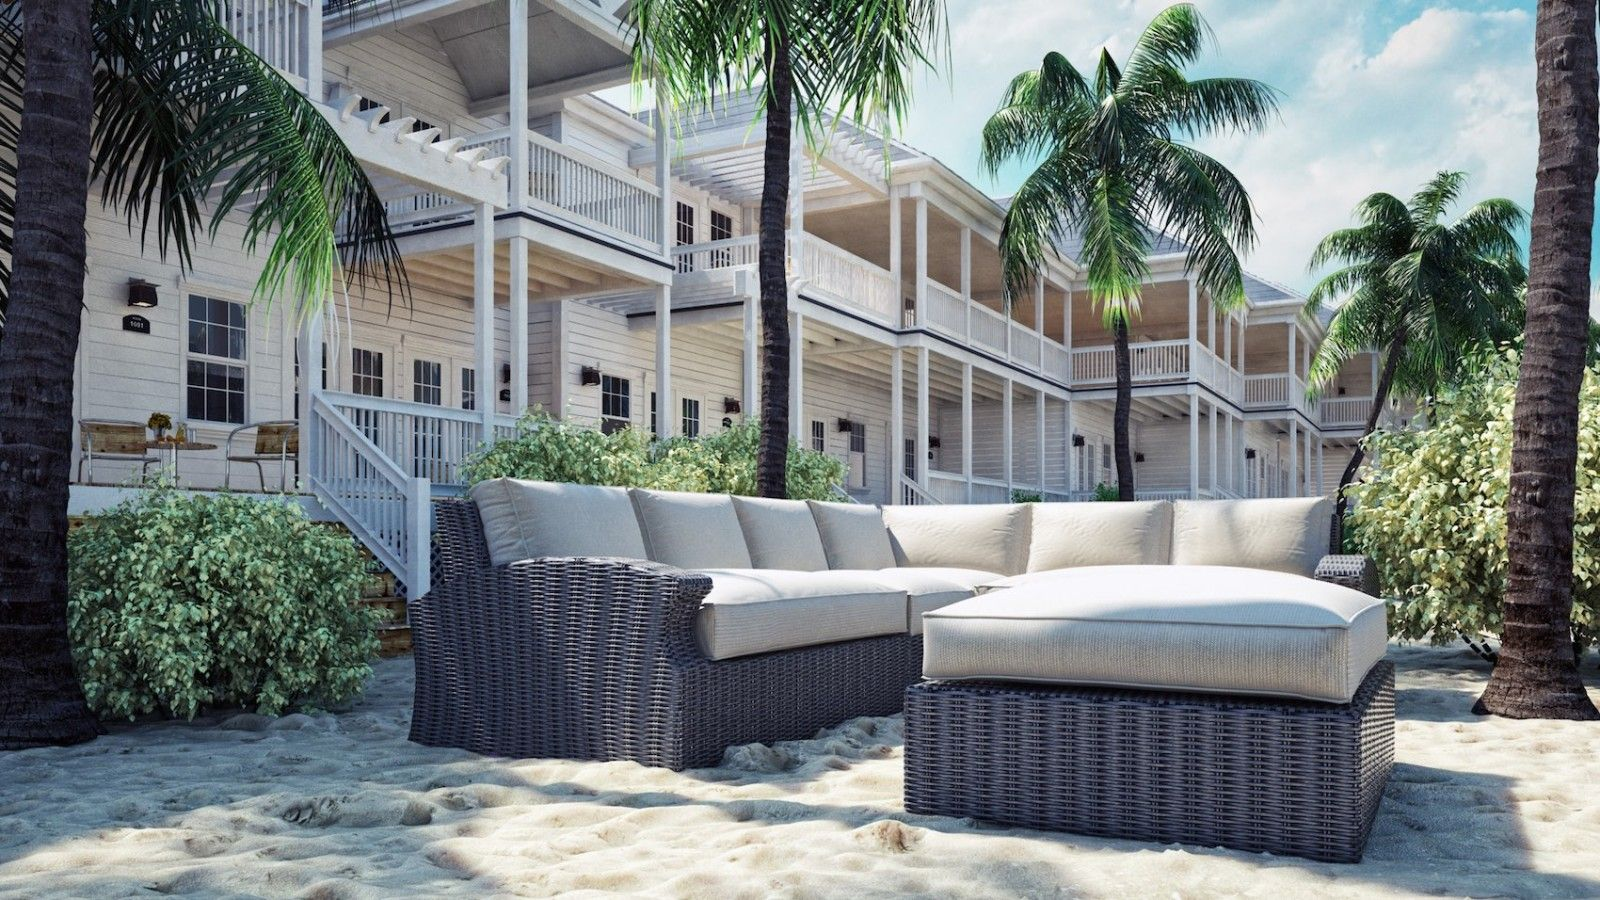 Amalfi Sectional Set Through Wind Grove Is Both Canadian Design And All Season Tested Time To Start Loving Both Inside And Out Patio Outdoor Furniture Sets Patio Chairs